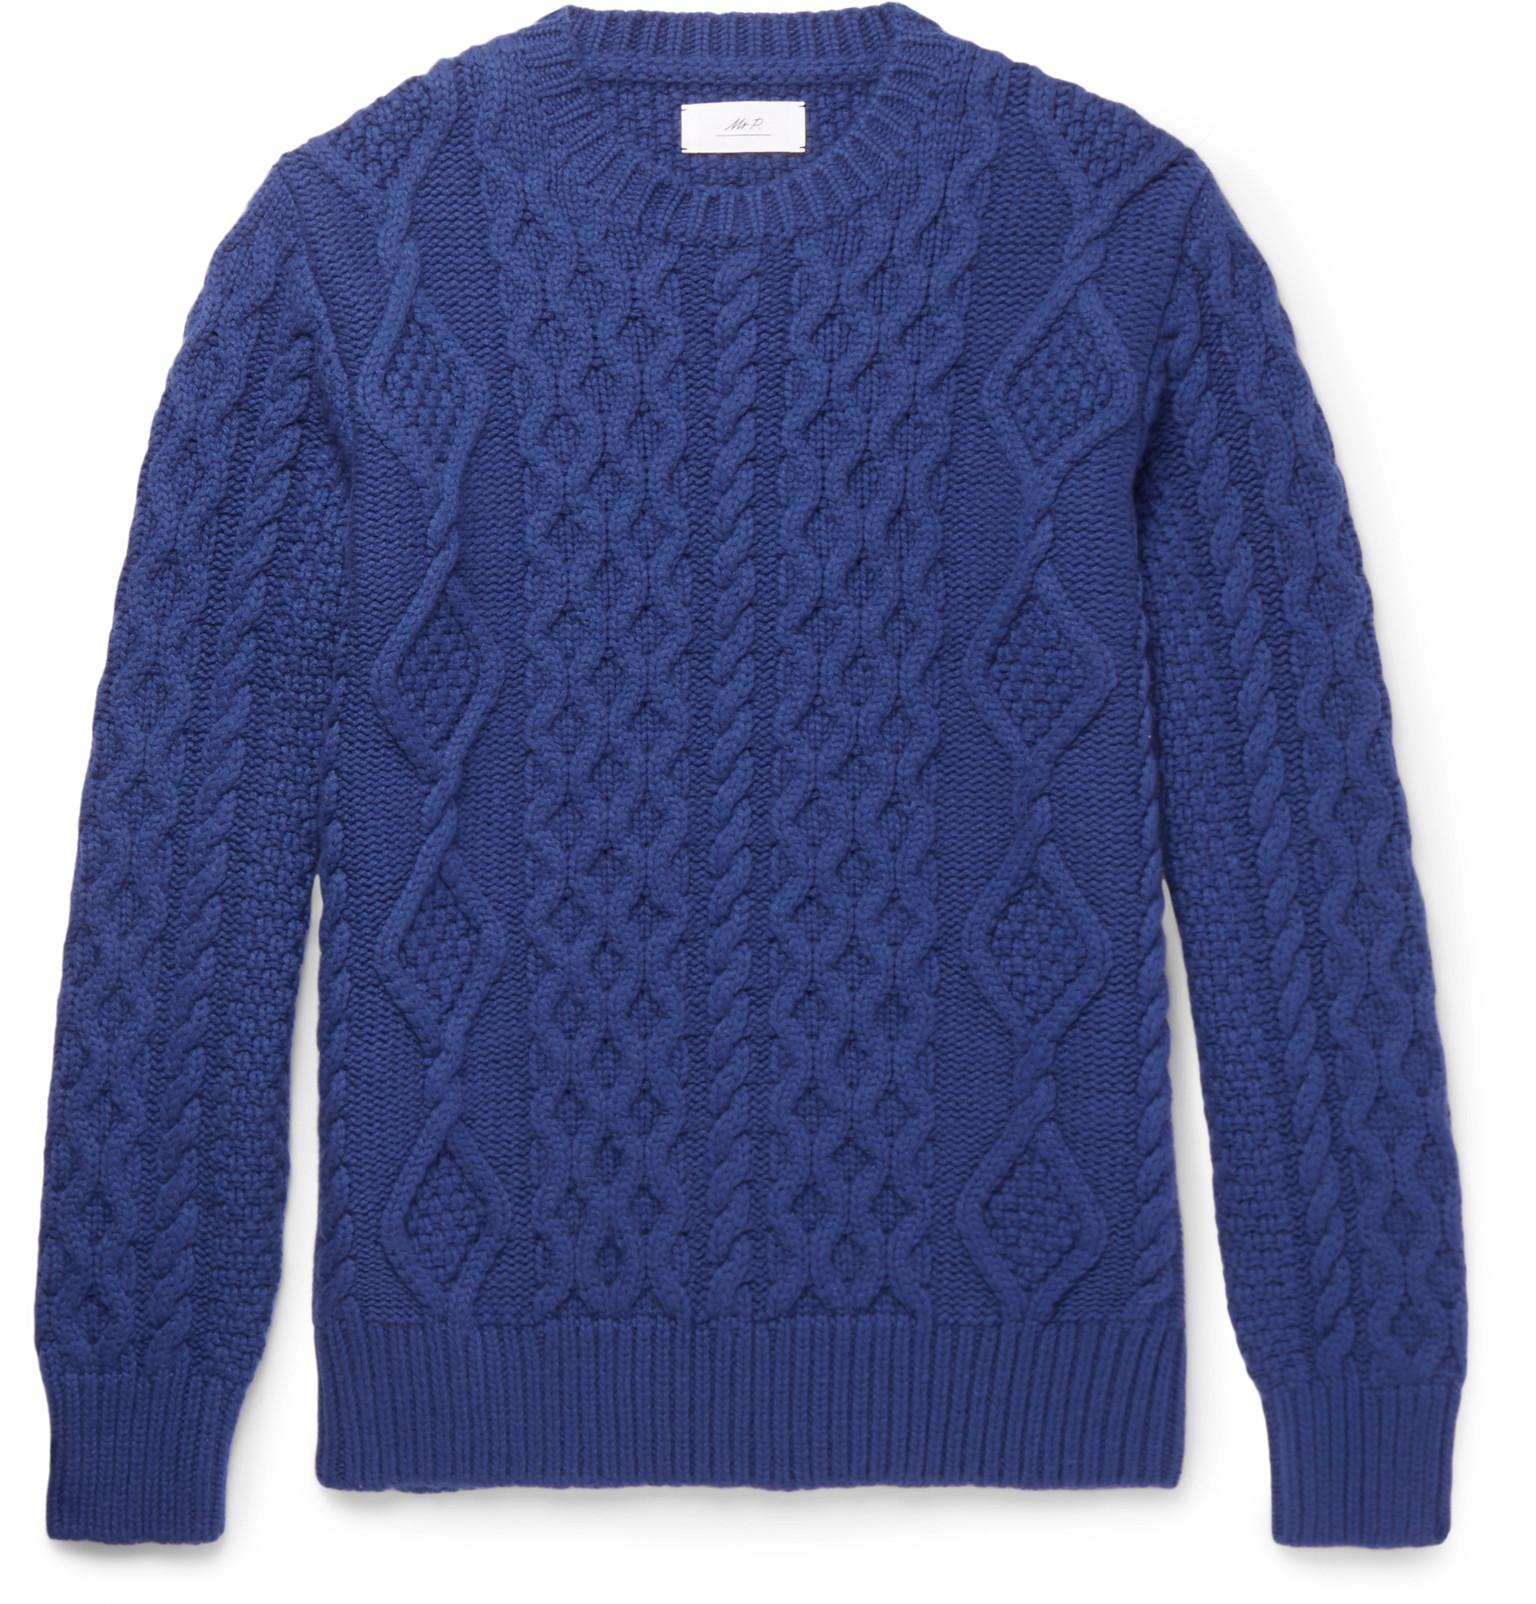 Cashmere Sweater Mr P. Hurry Up Cheap Sale Hot Sale 3N0PP6F